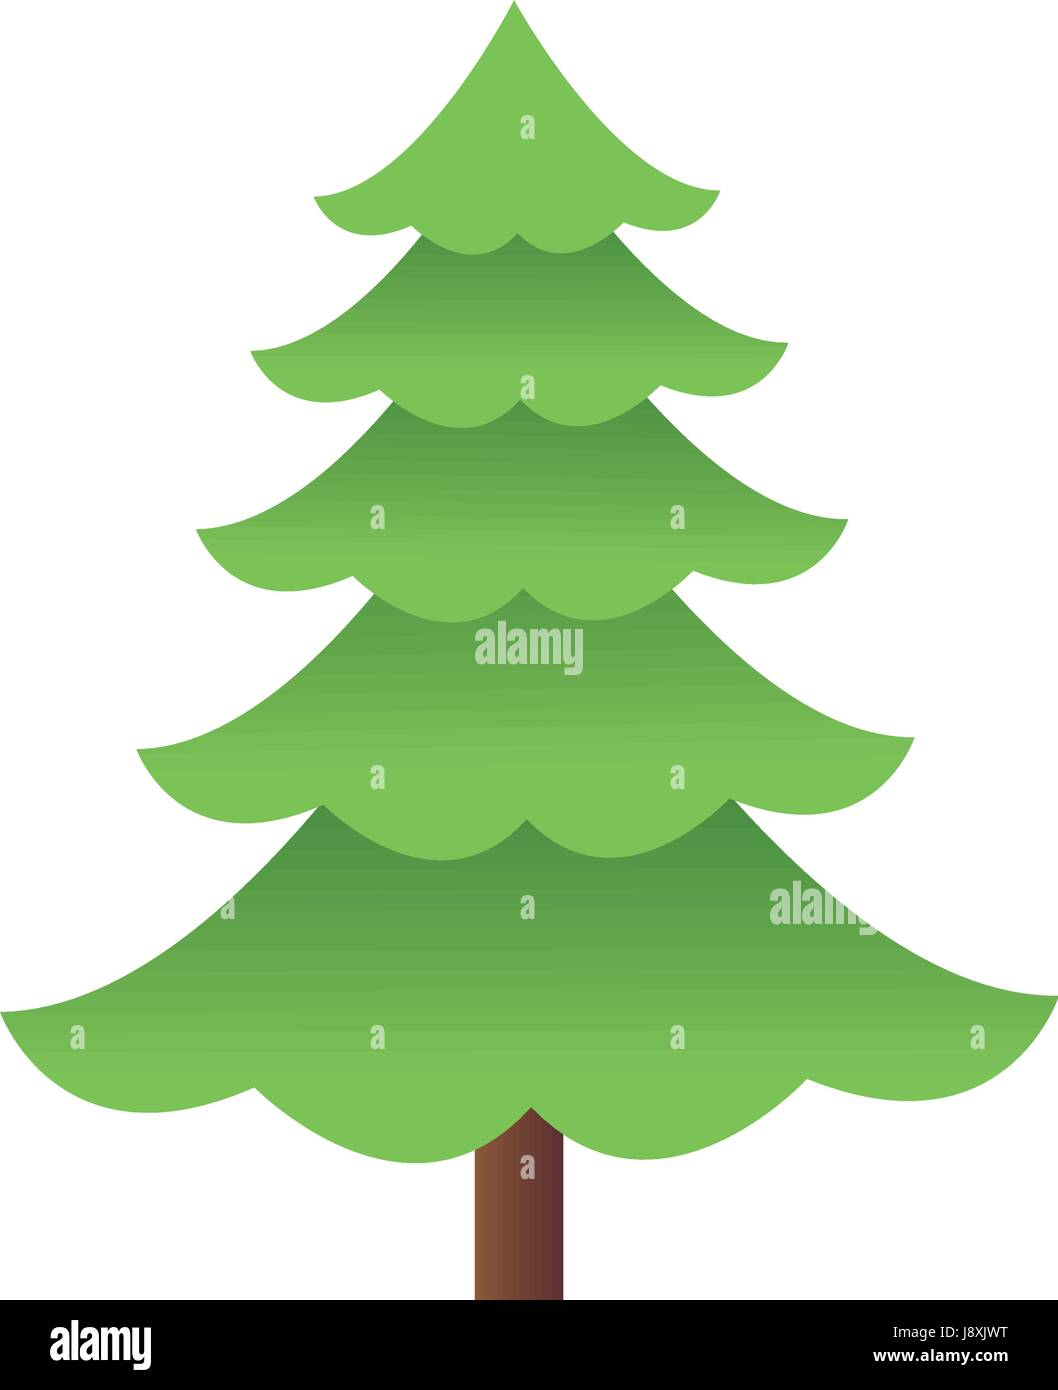 Cartoon Pine Tree Natural Plant Conifer Image